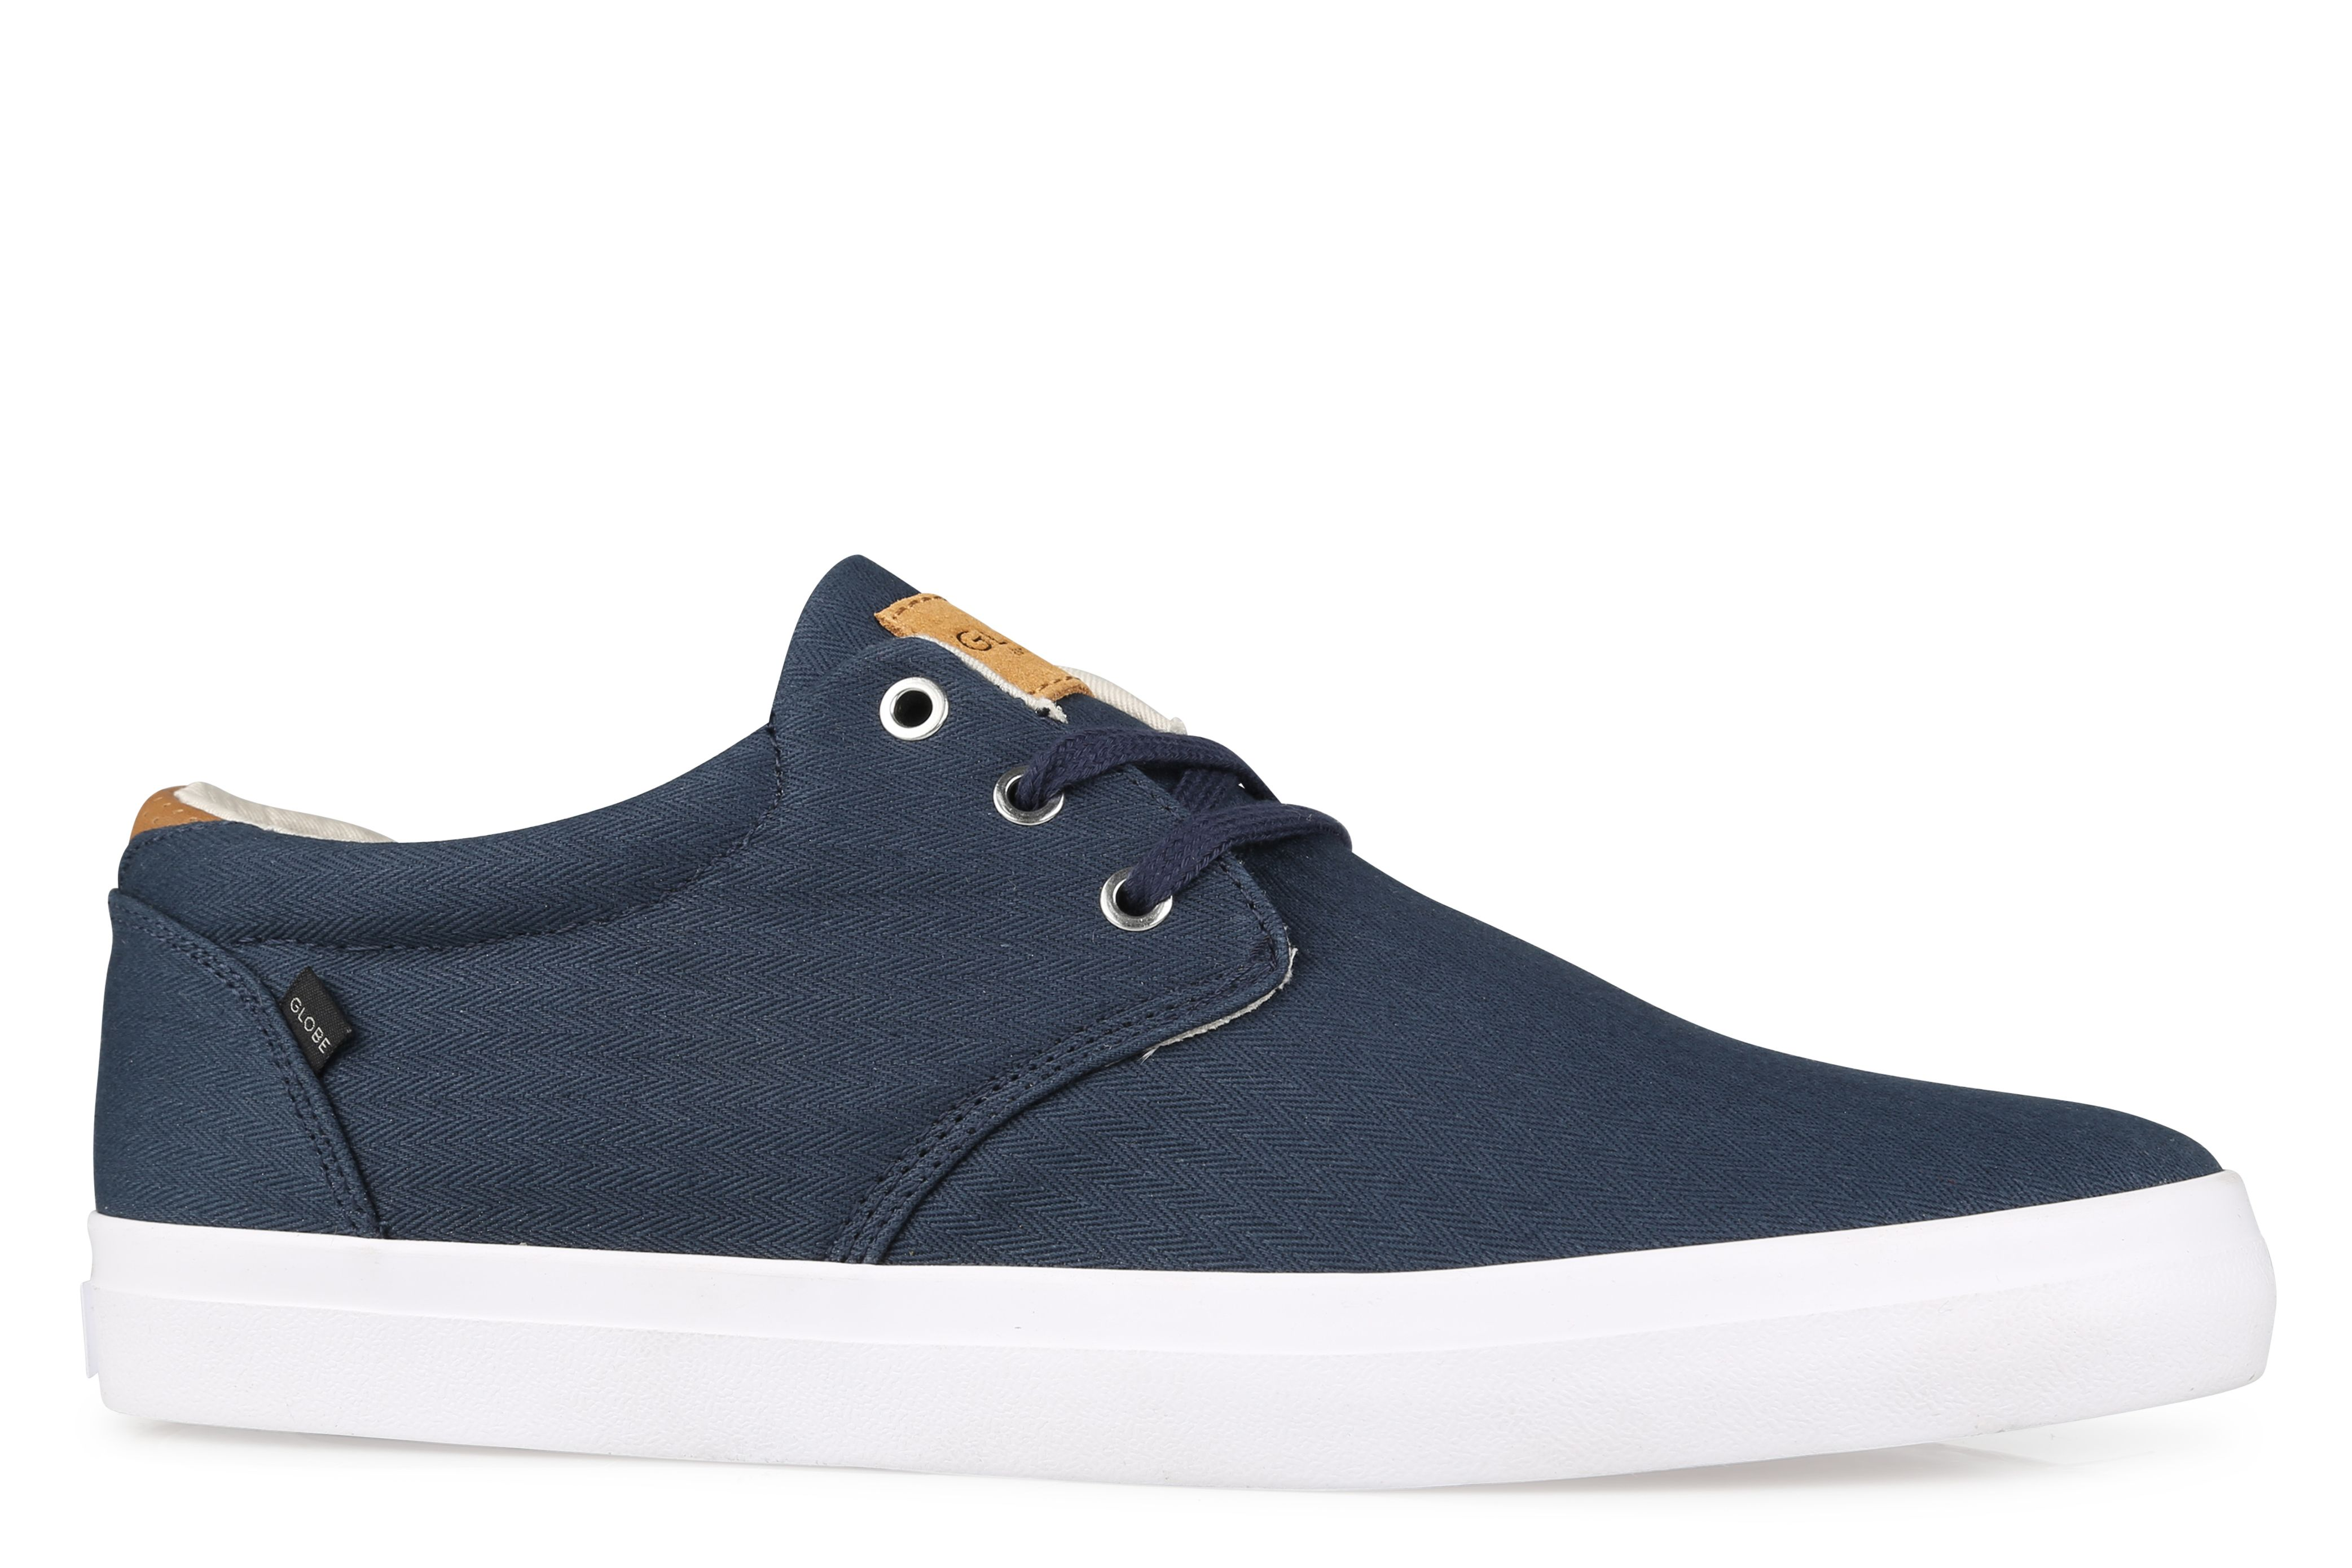 Buy the latest Men's Shoes at Shoe Connection.